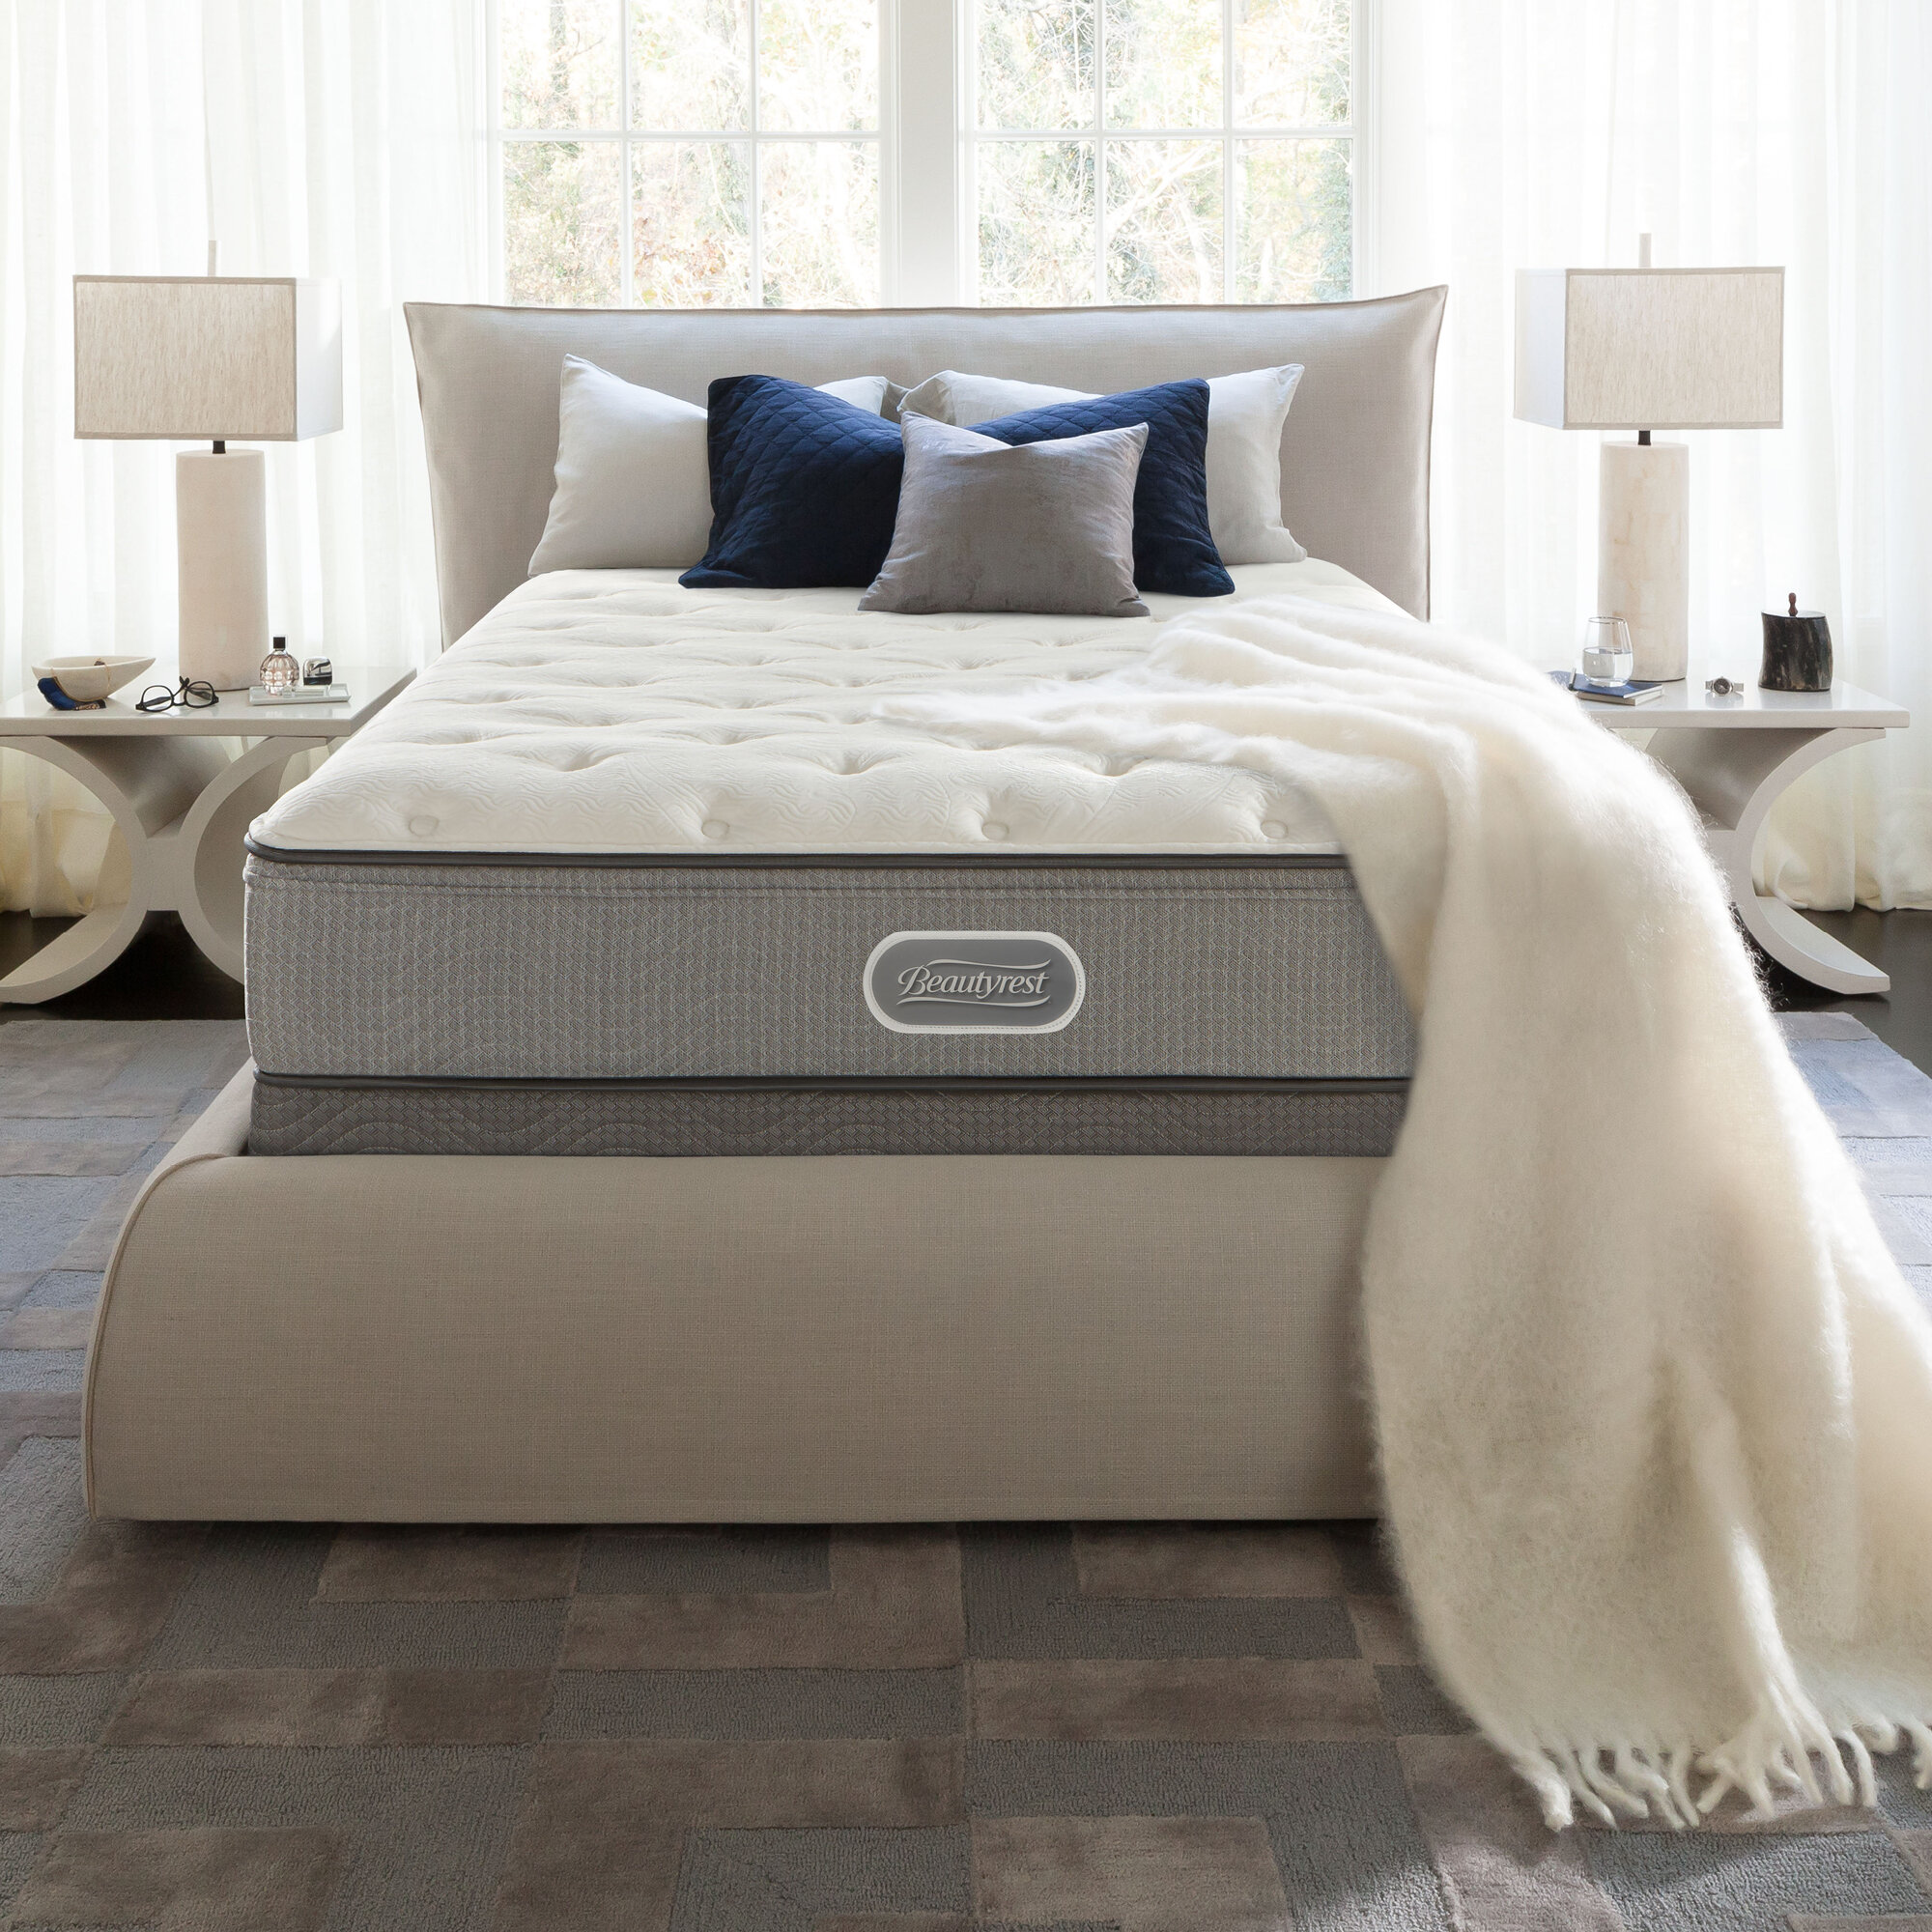 id mattress top pillow hacking topper bed a